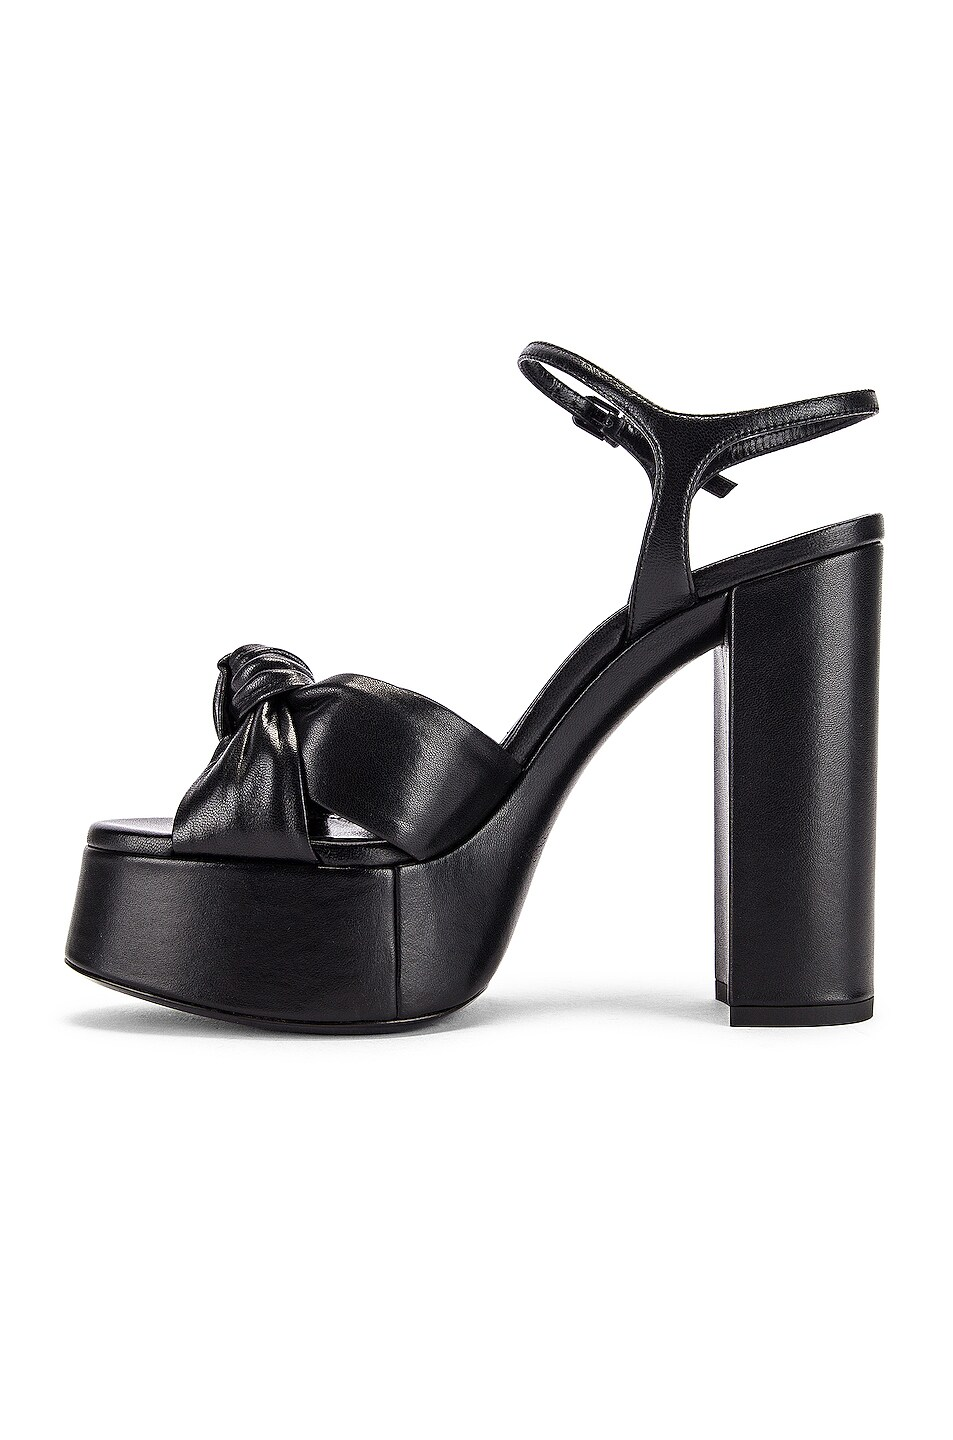 Image 5 of Saint Laurent Bianca Platform Sandals in Black